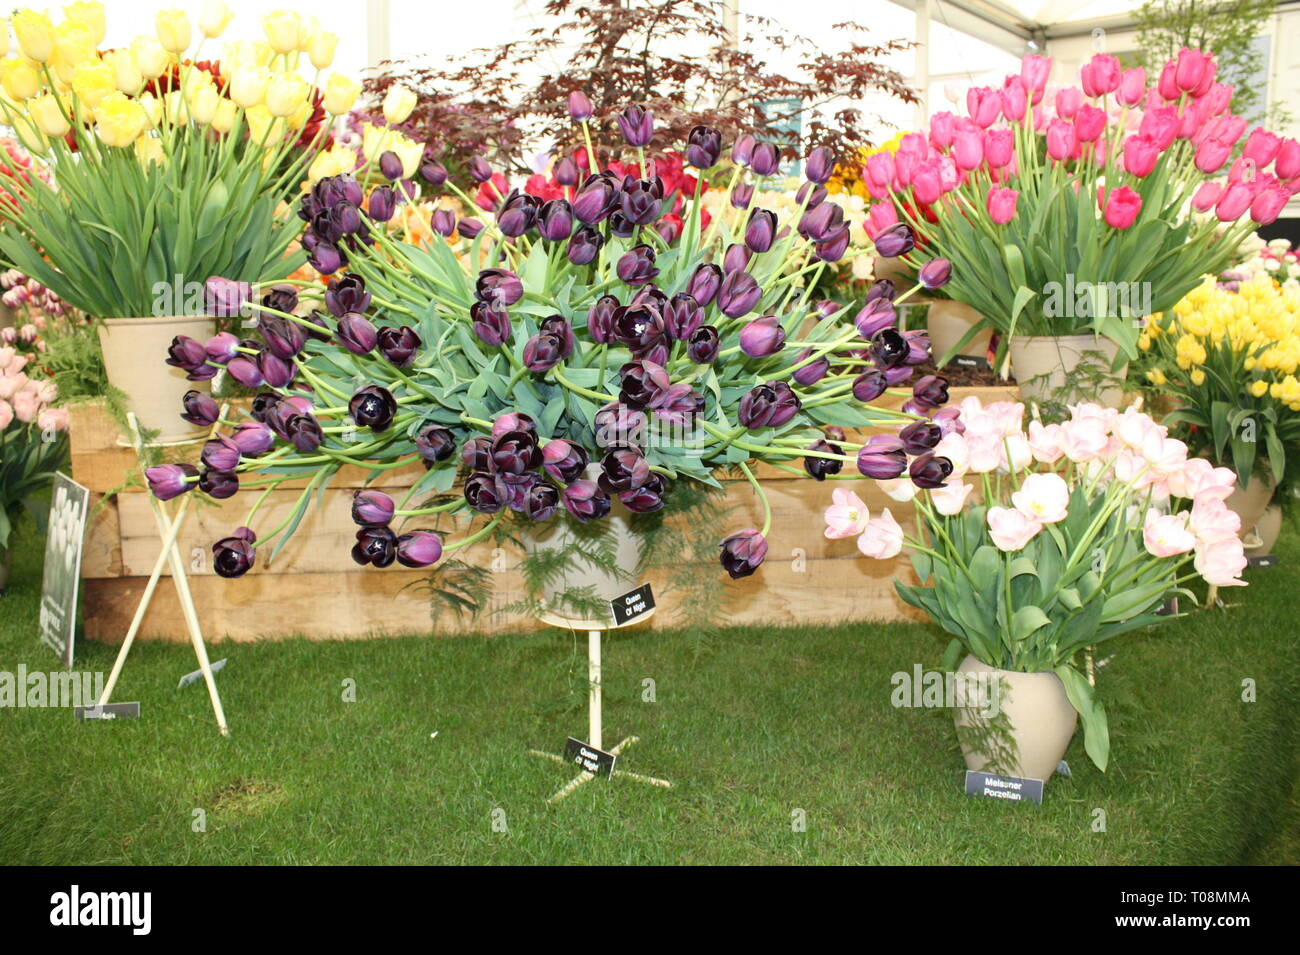 Tulips flowers on display Stock Photo